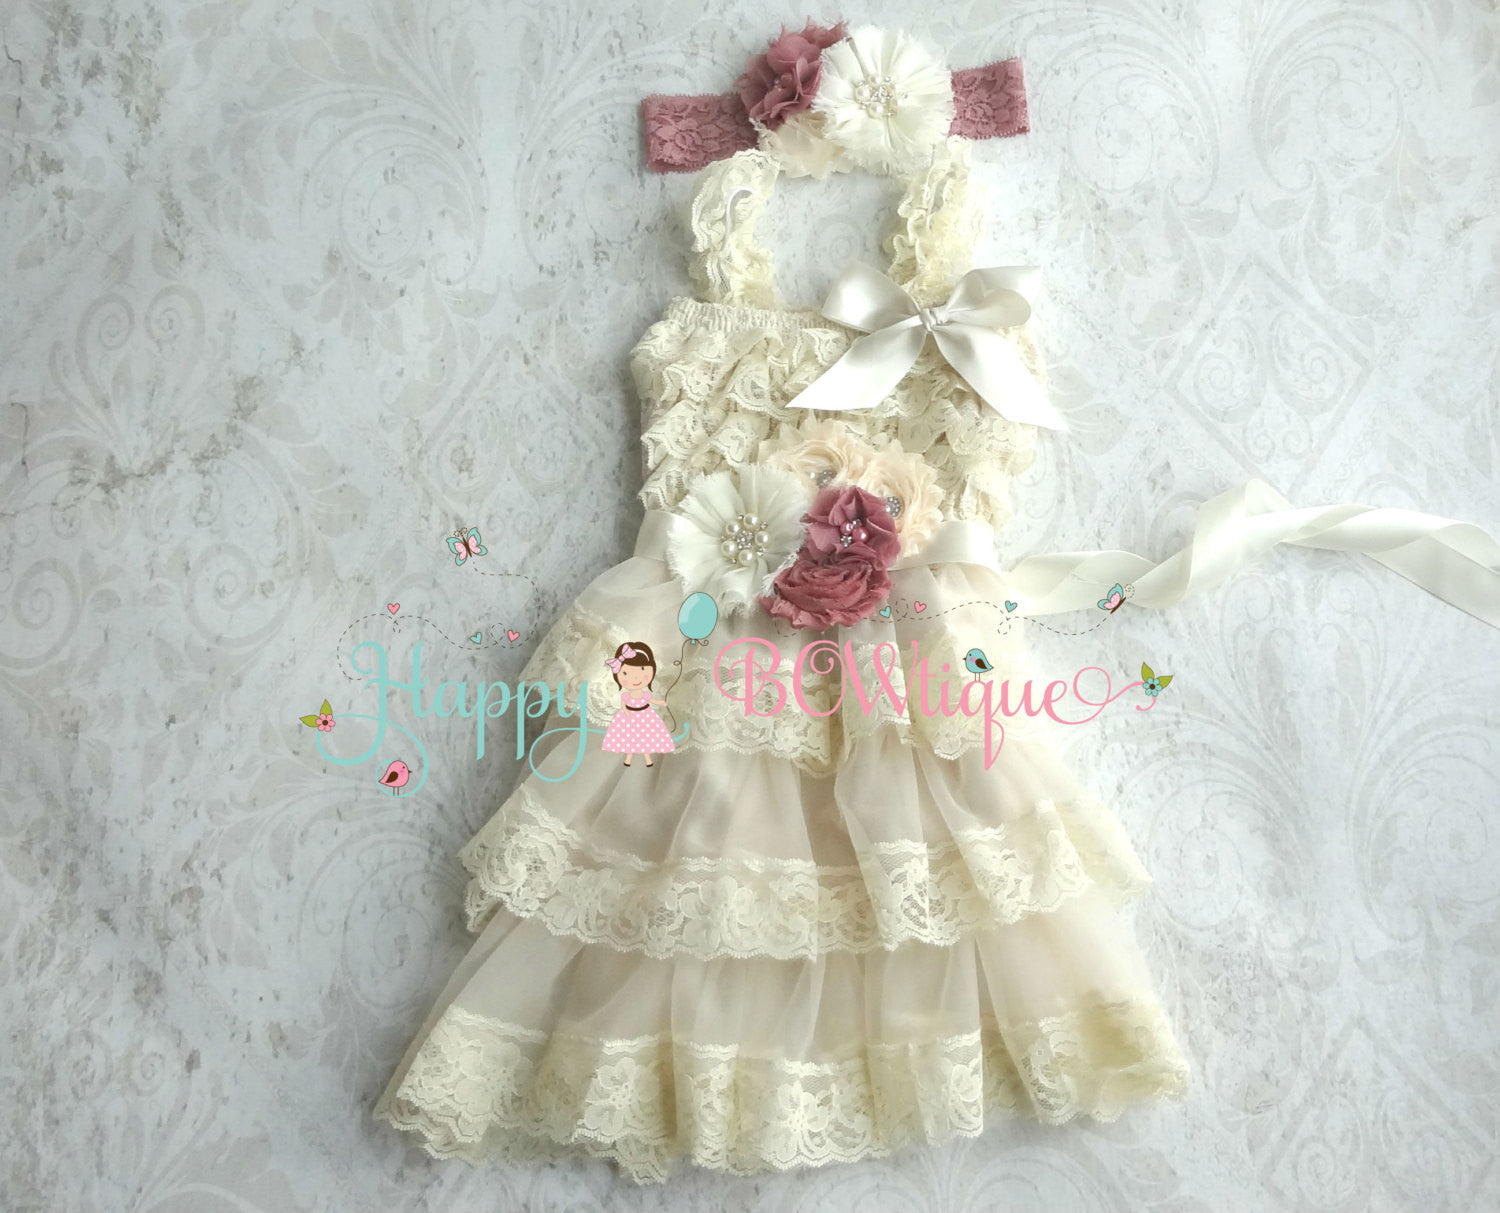 Girl's Champange Dress / Champagne Rose Chiffon Lace Dress set - Happy BOWtique - children's clothing, Baby Girl clothing